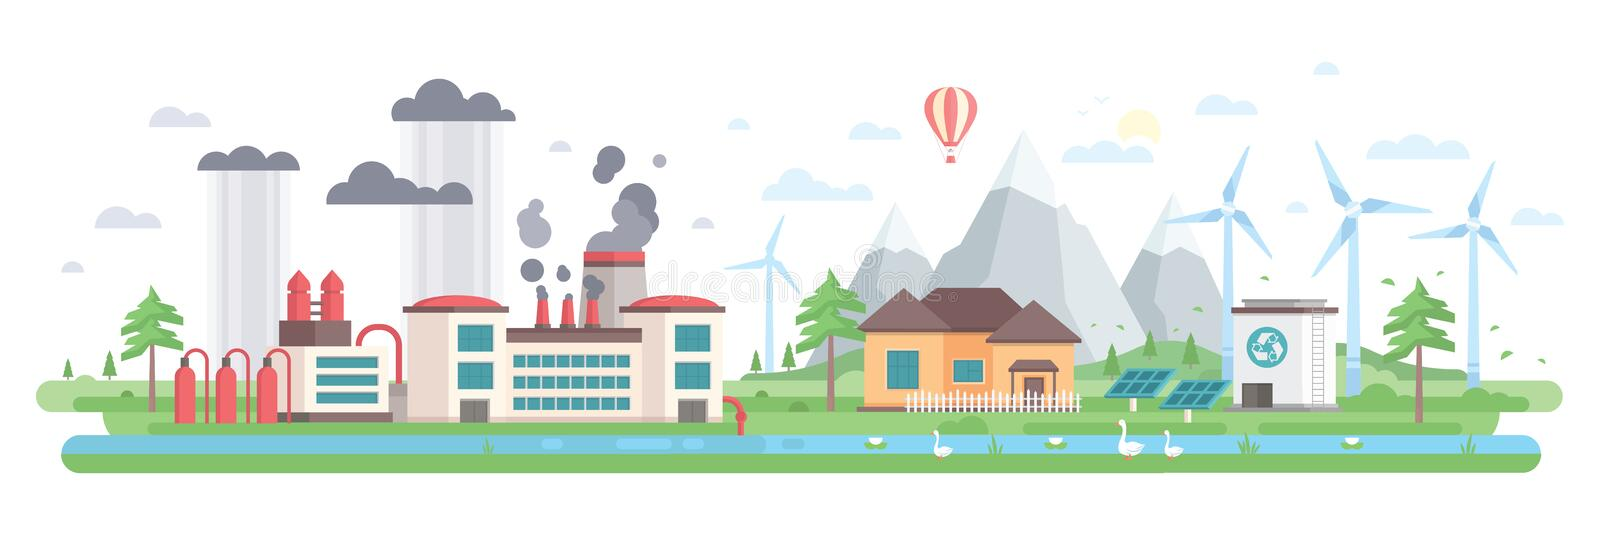 Air and water pollution - modern flat design style vector illustration stock illustration